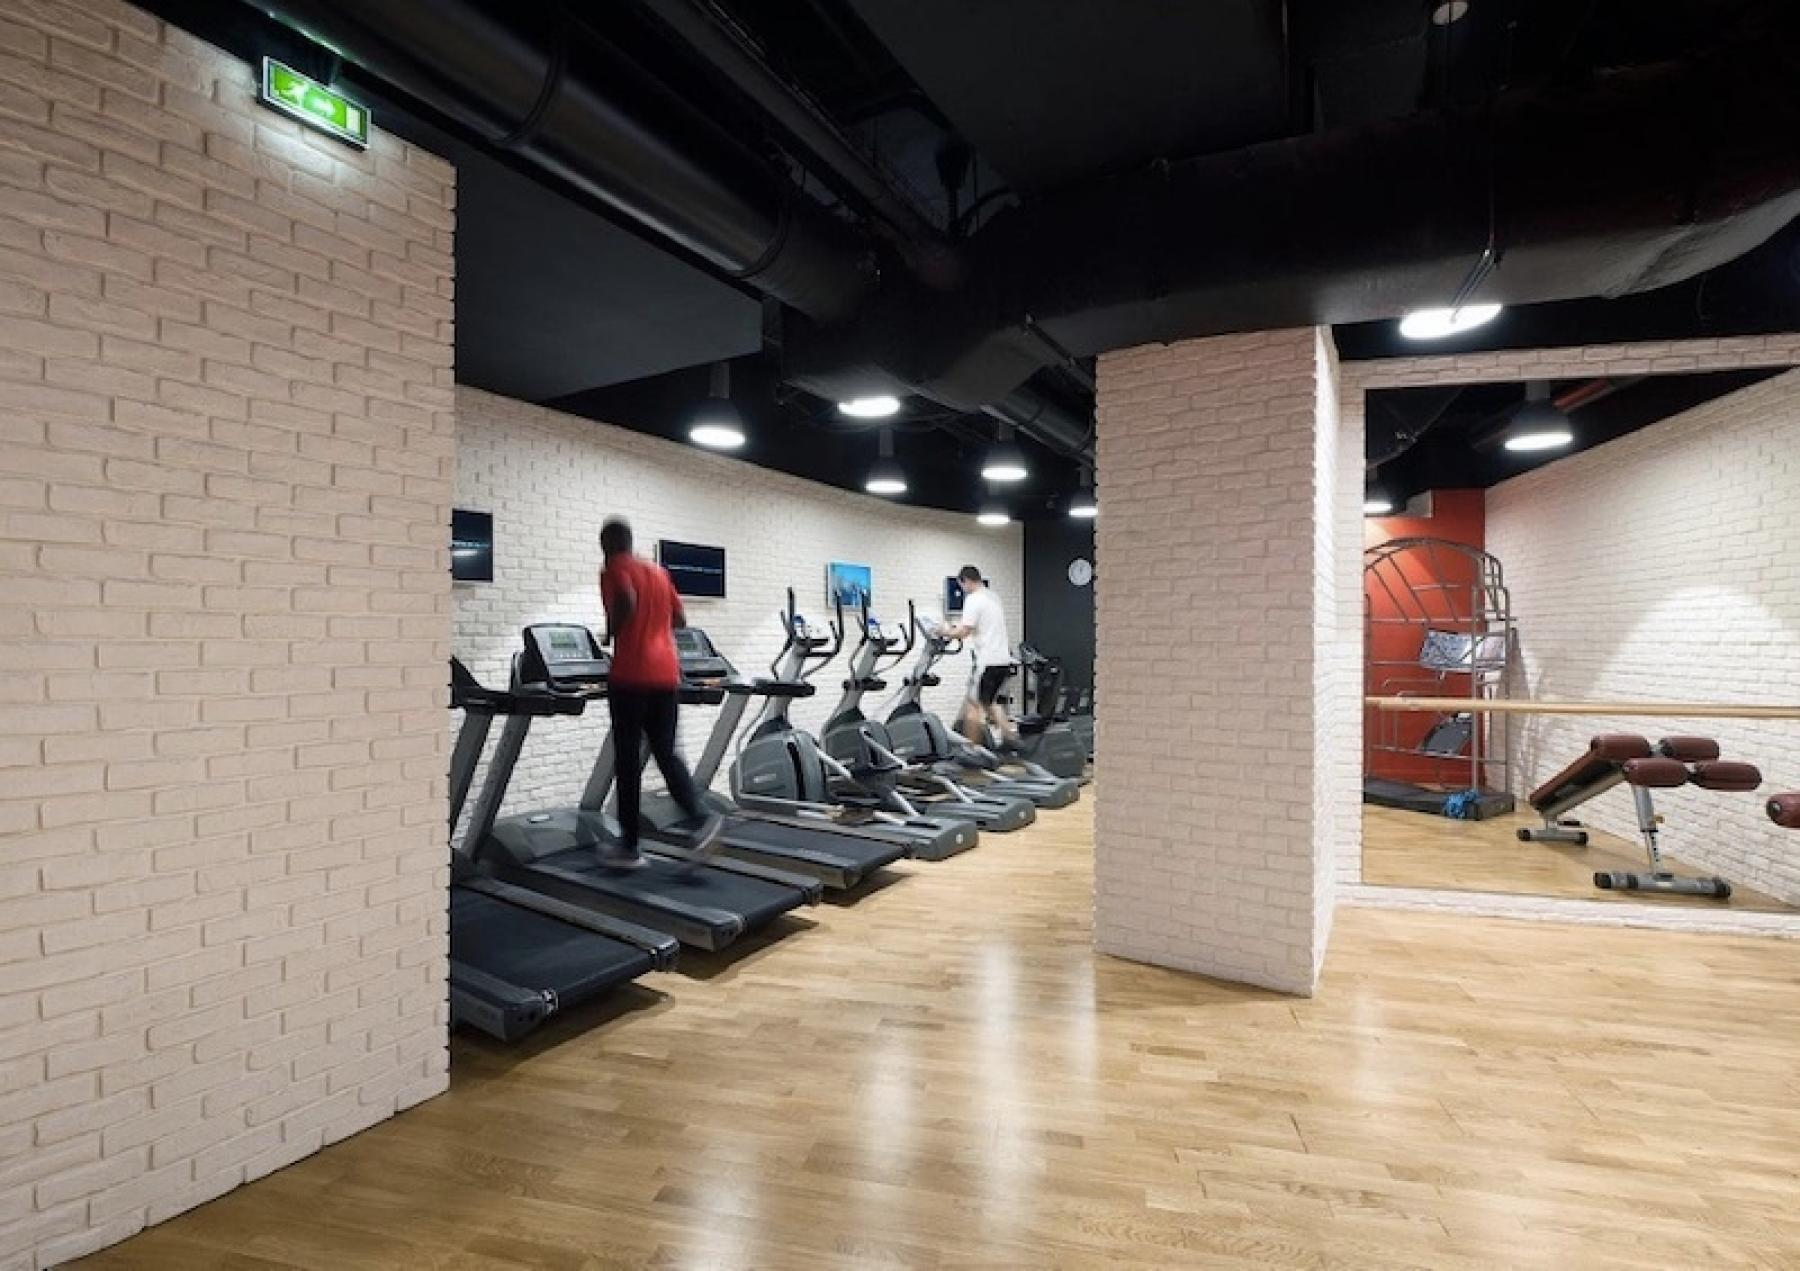 Gym to boost your productivity at work at cours Valmy